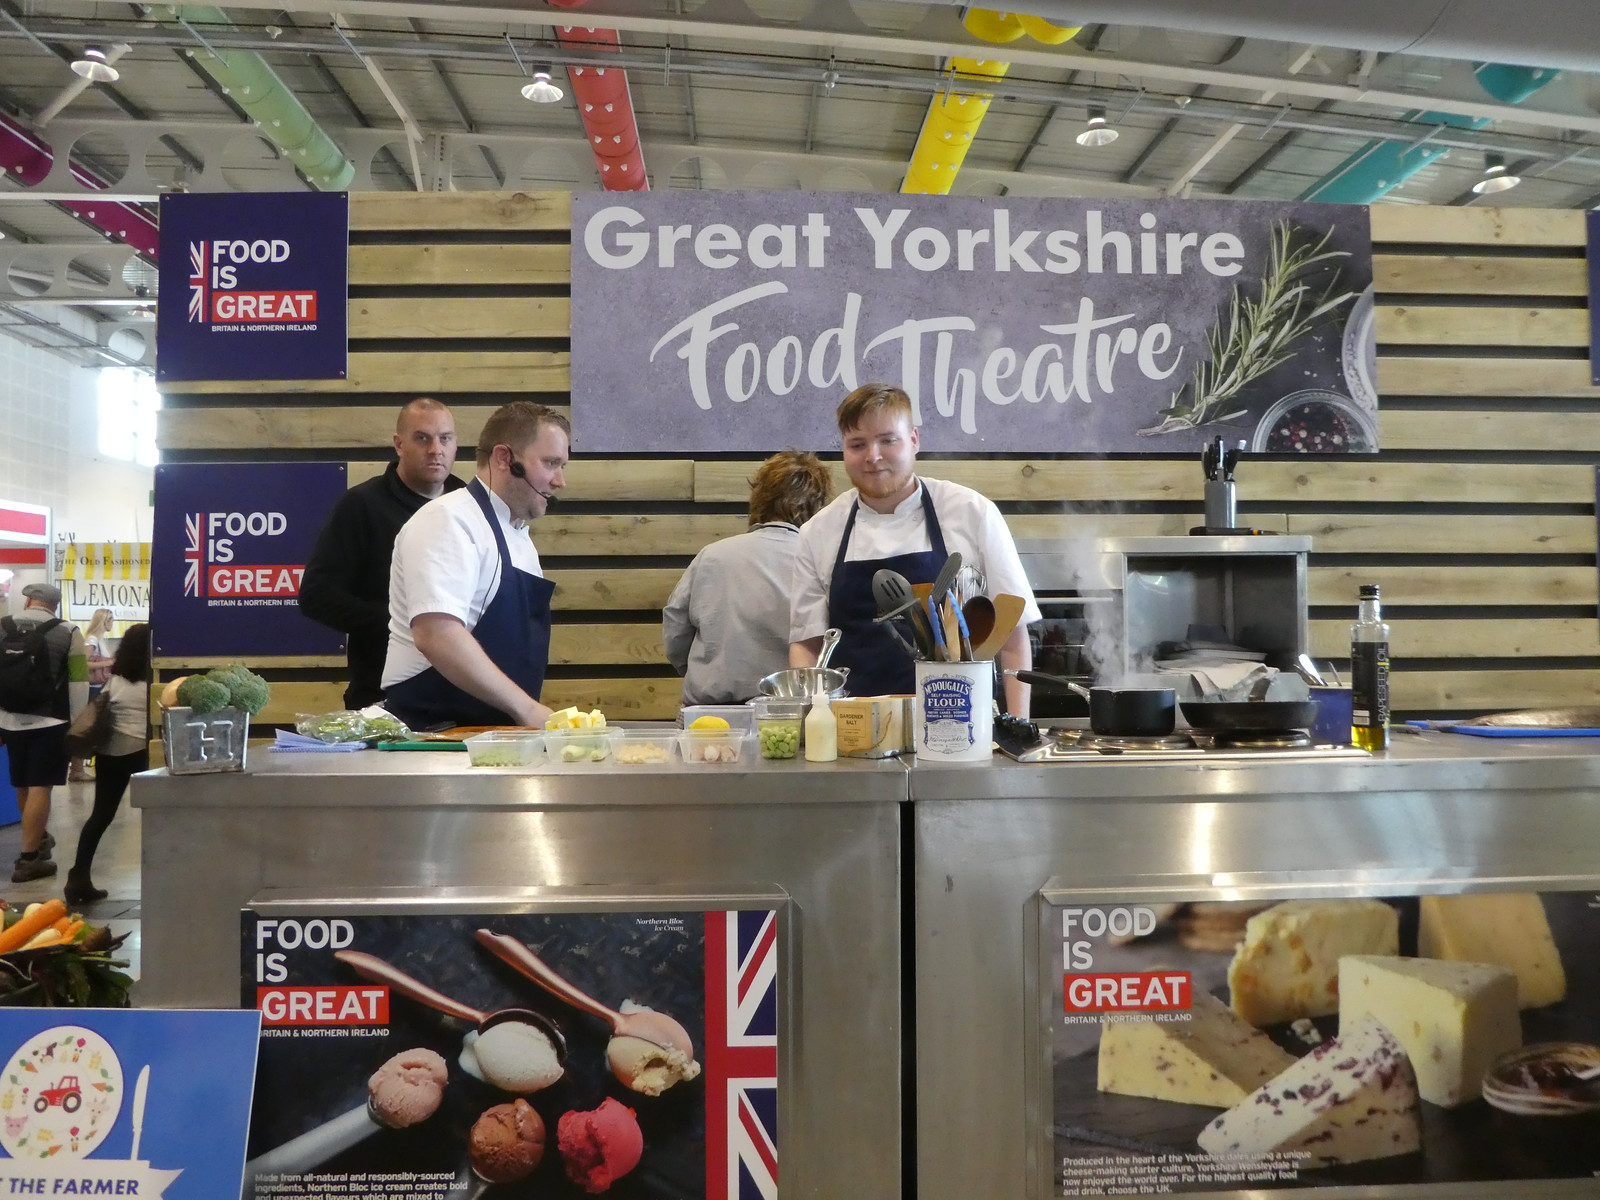 Great Yorkshire Food Theatre, Great Yorkshire Show, Harrogate